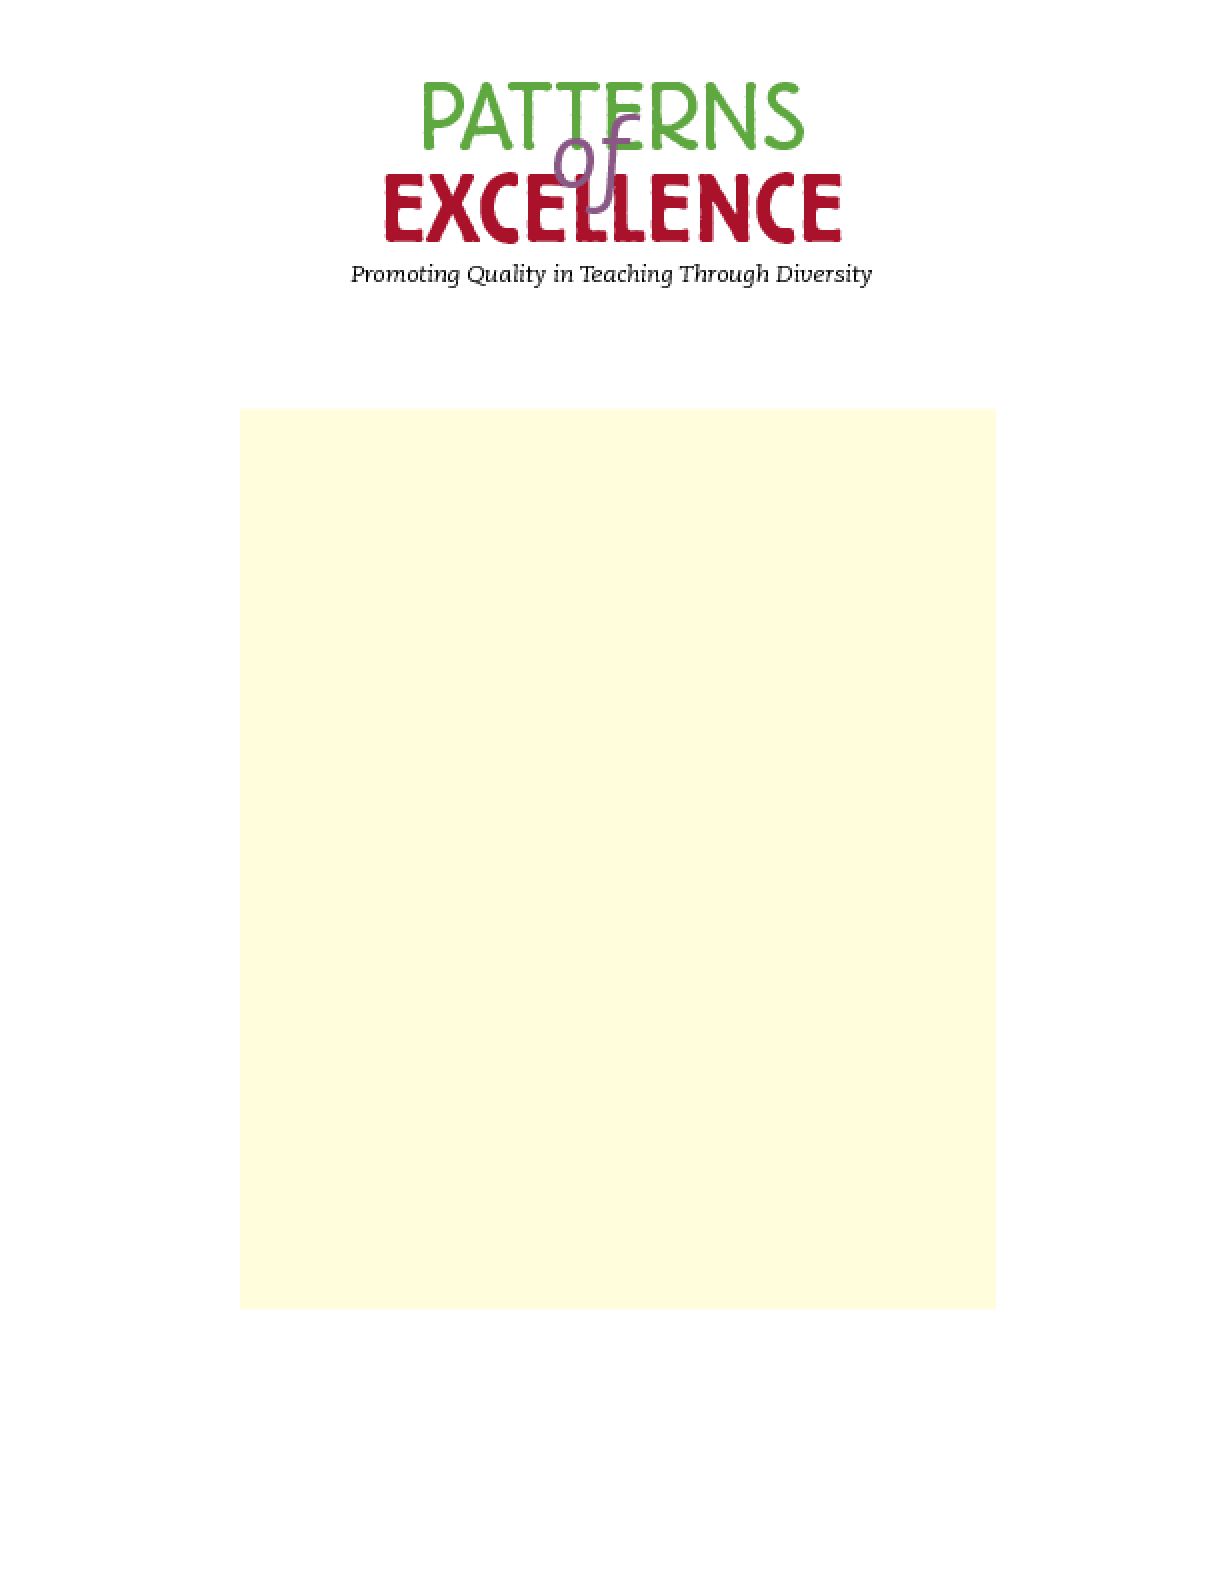 Patterns of Excellence: Promoting Quality in Teaching Through Diversity